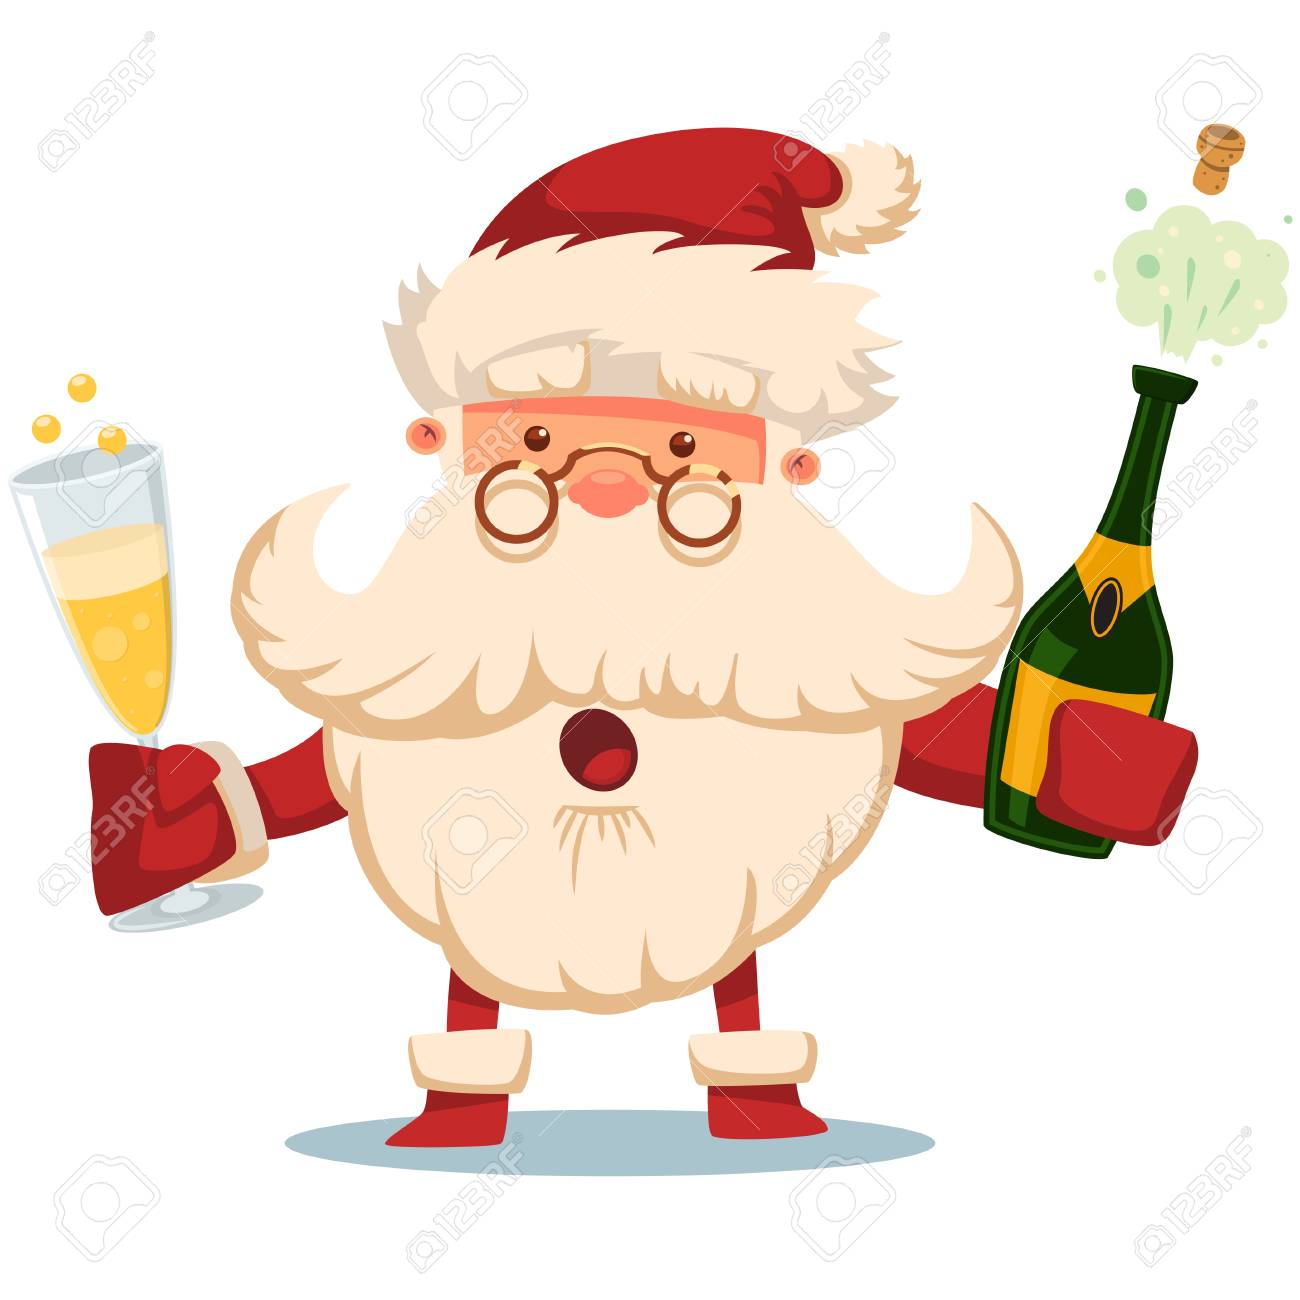 Cute Santa Claus with champagne bottle explosion and glass. Vector Christmas cartoon illustration isolated on white background. - 91298066